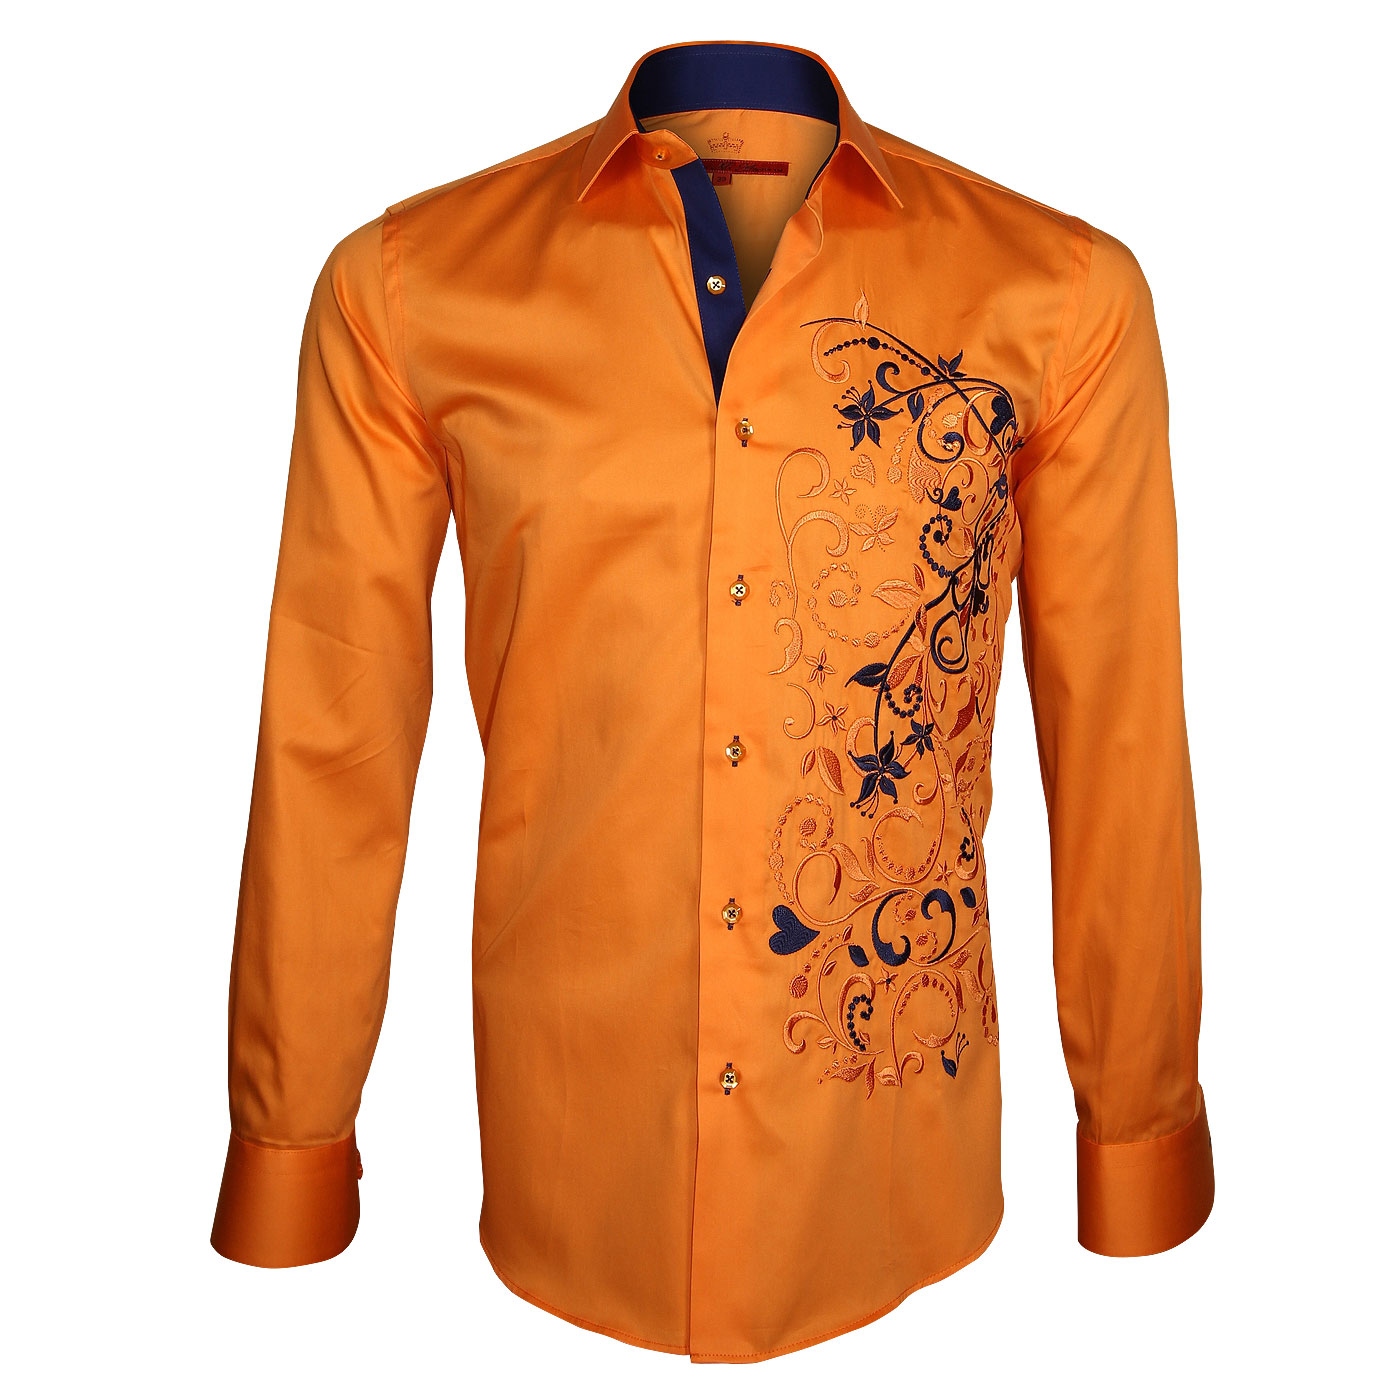 Orange Shirt for Men +600 models on Webmenshirts.com